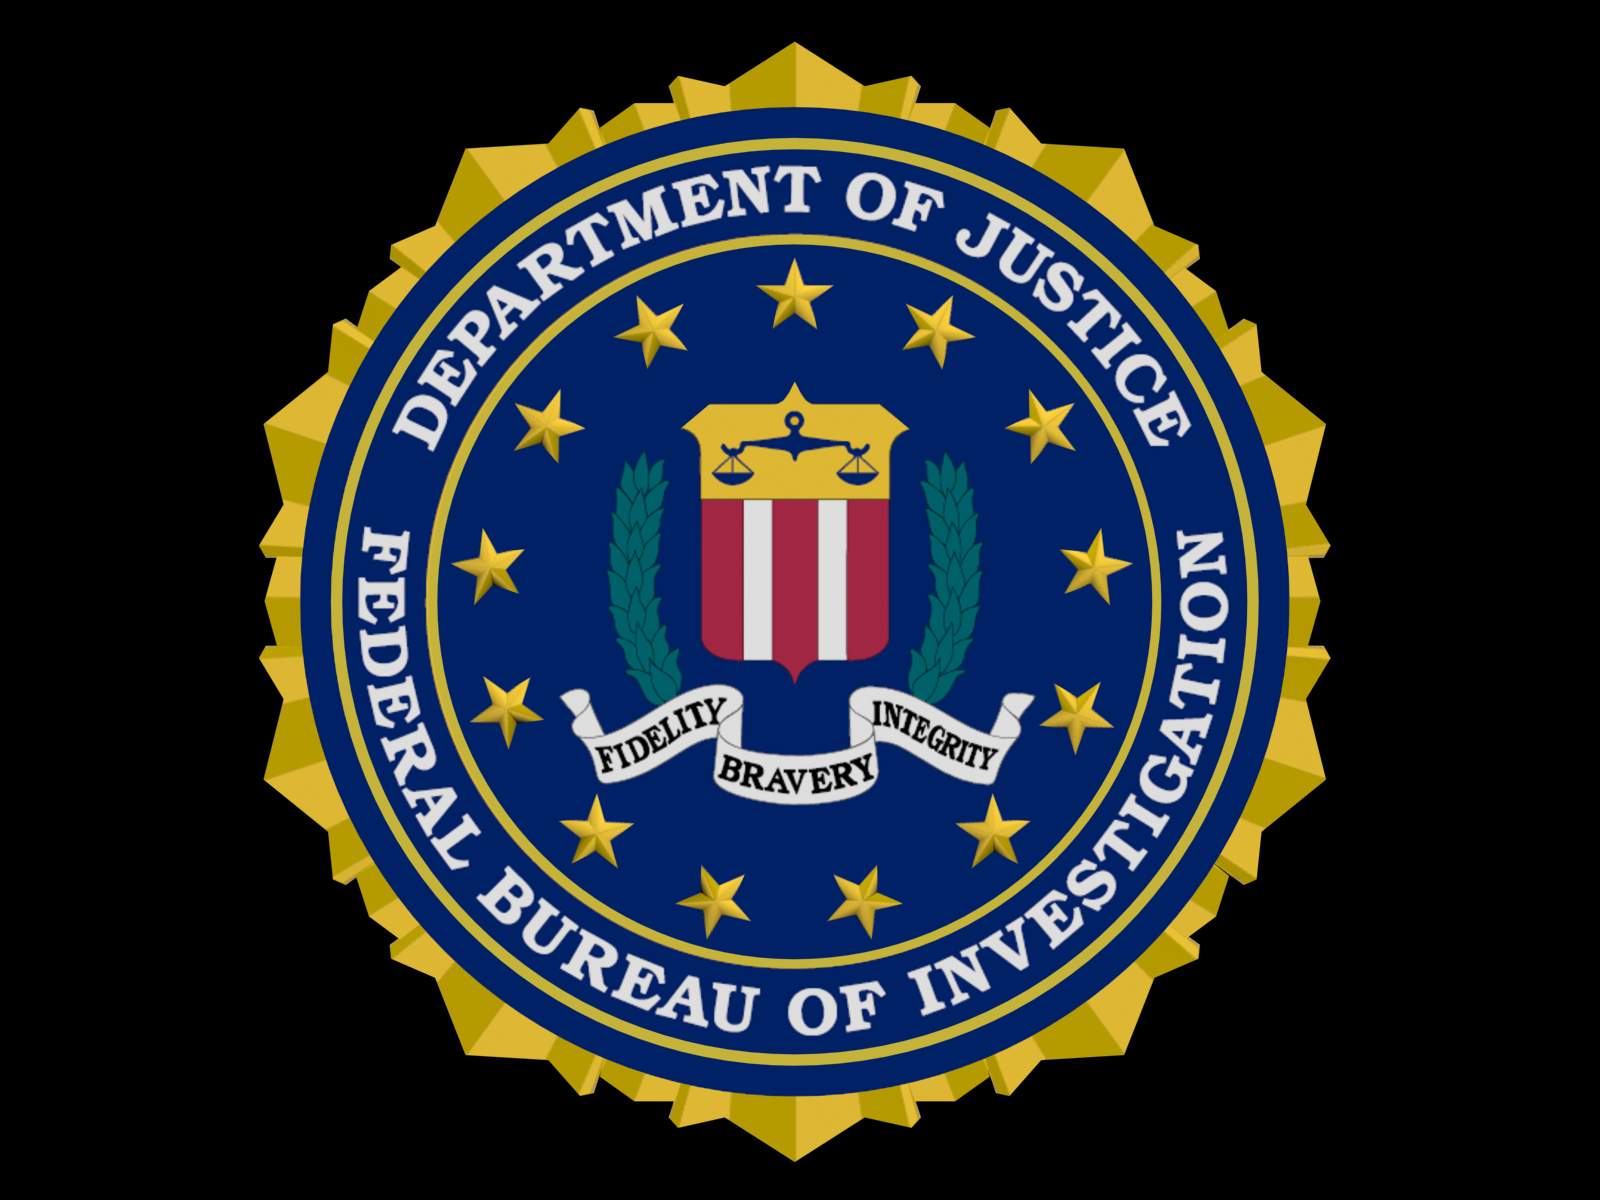 Government bureau of criminal investigation government for Bureau government